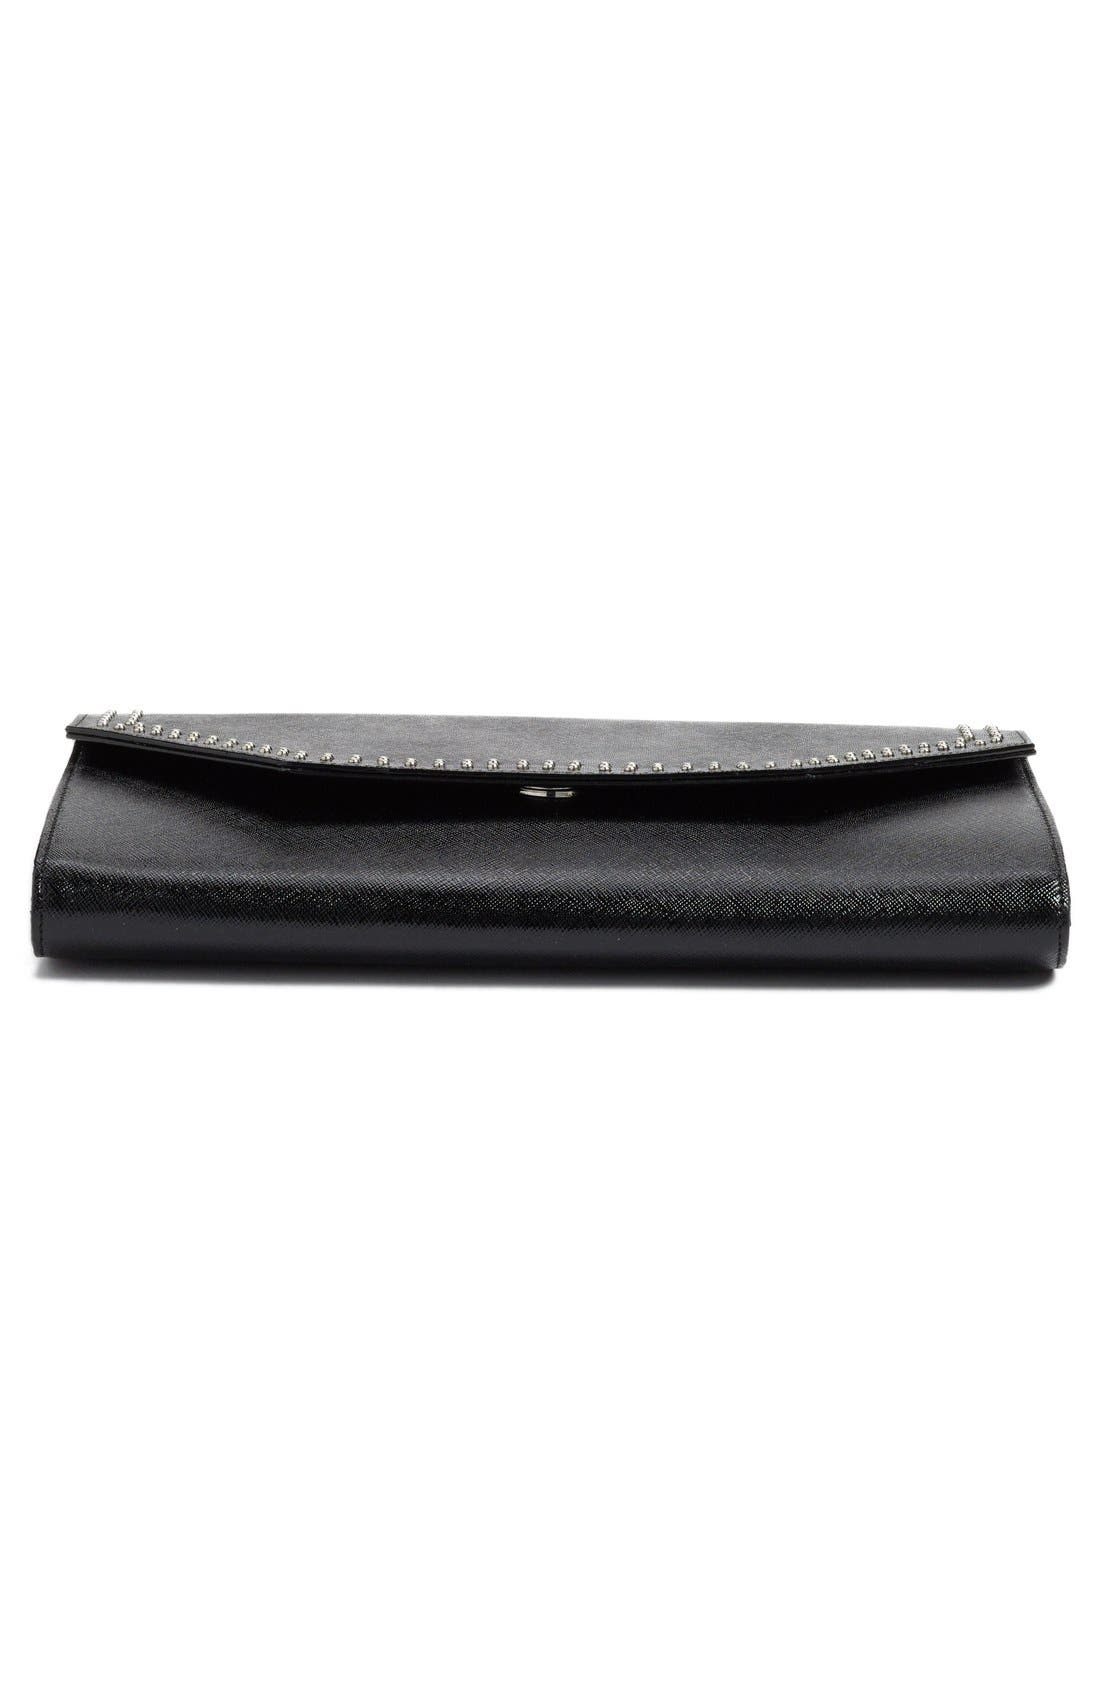 'Angle' Studded Leather Convertible Clutch,                             Alternate thumbnail 4, color,                             001